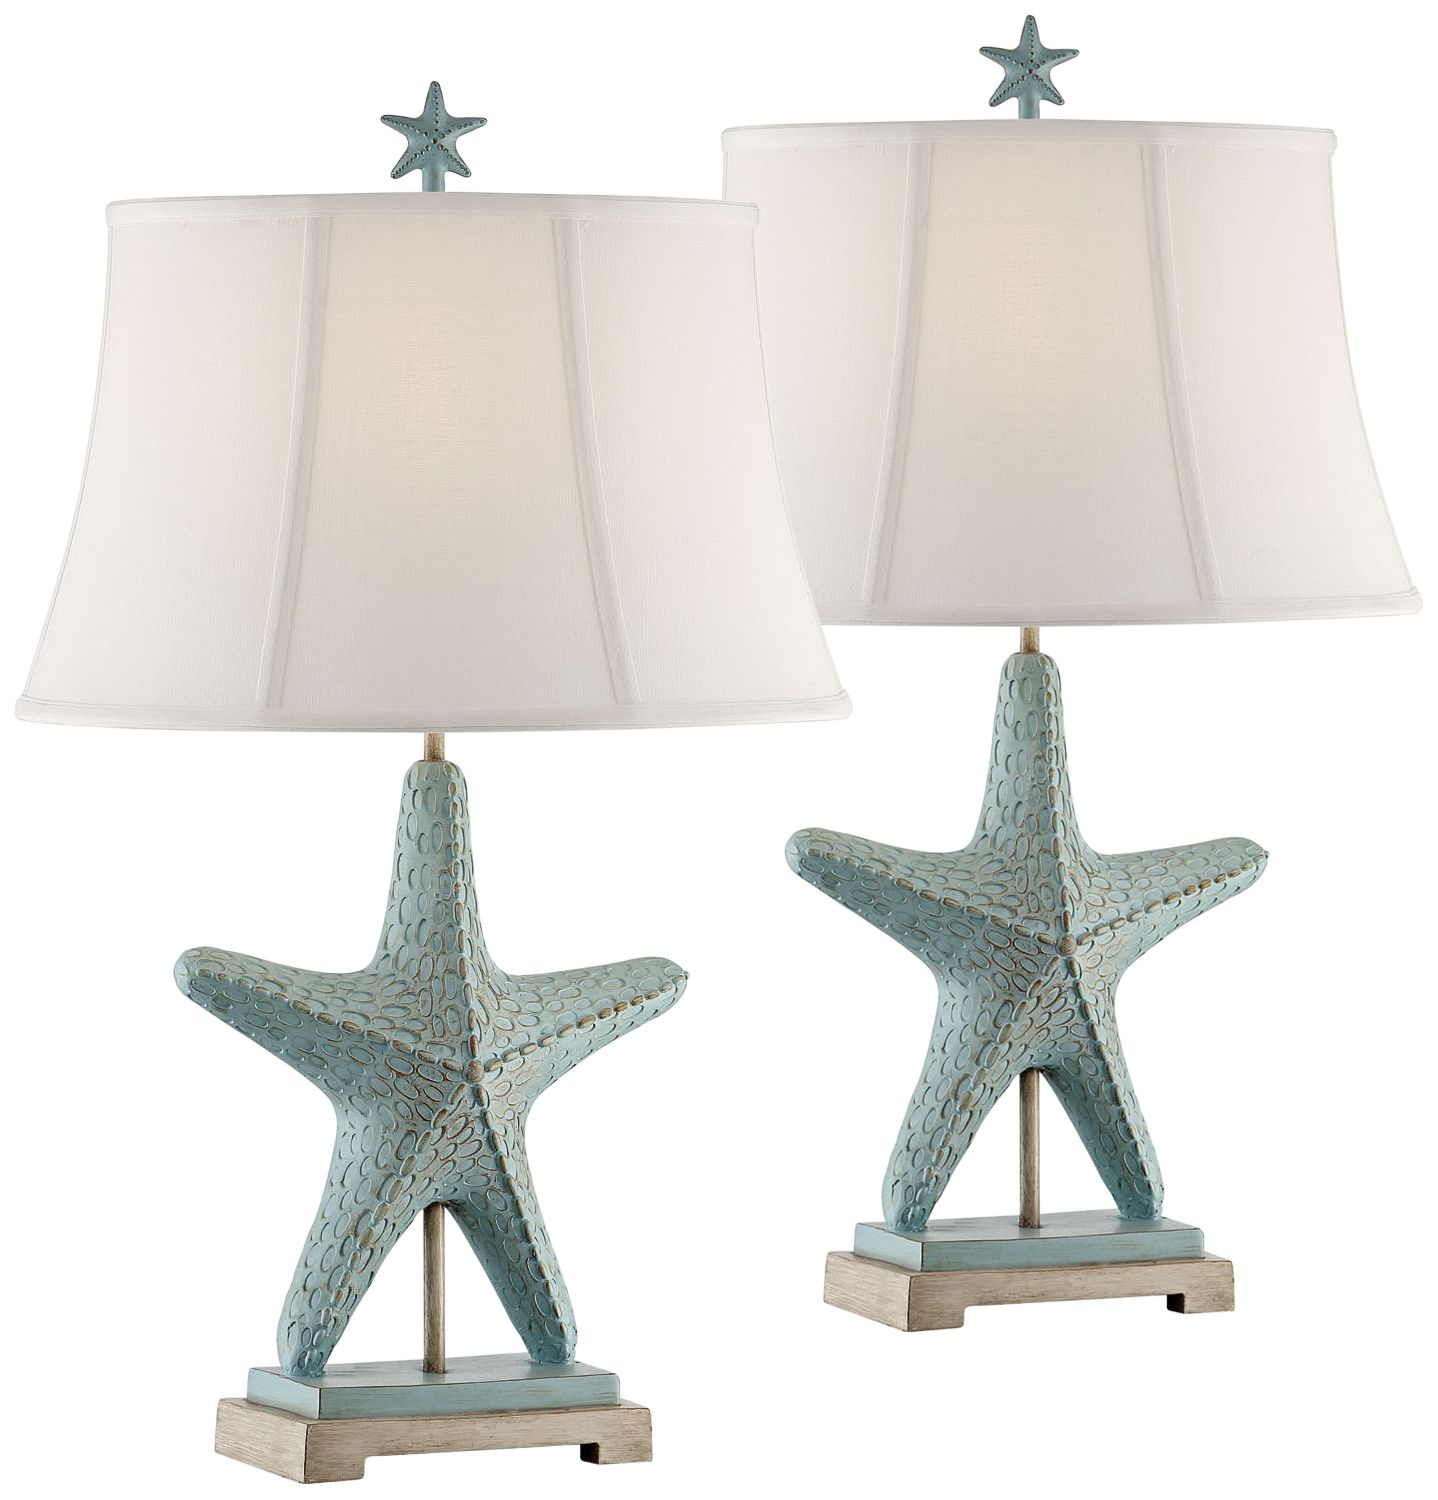 Charmant Starfish Glacier Blue Table Lamps Set Of 2